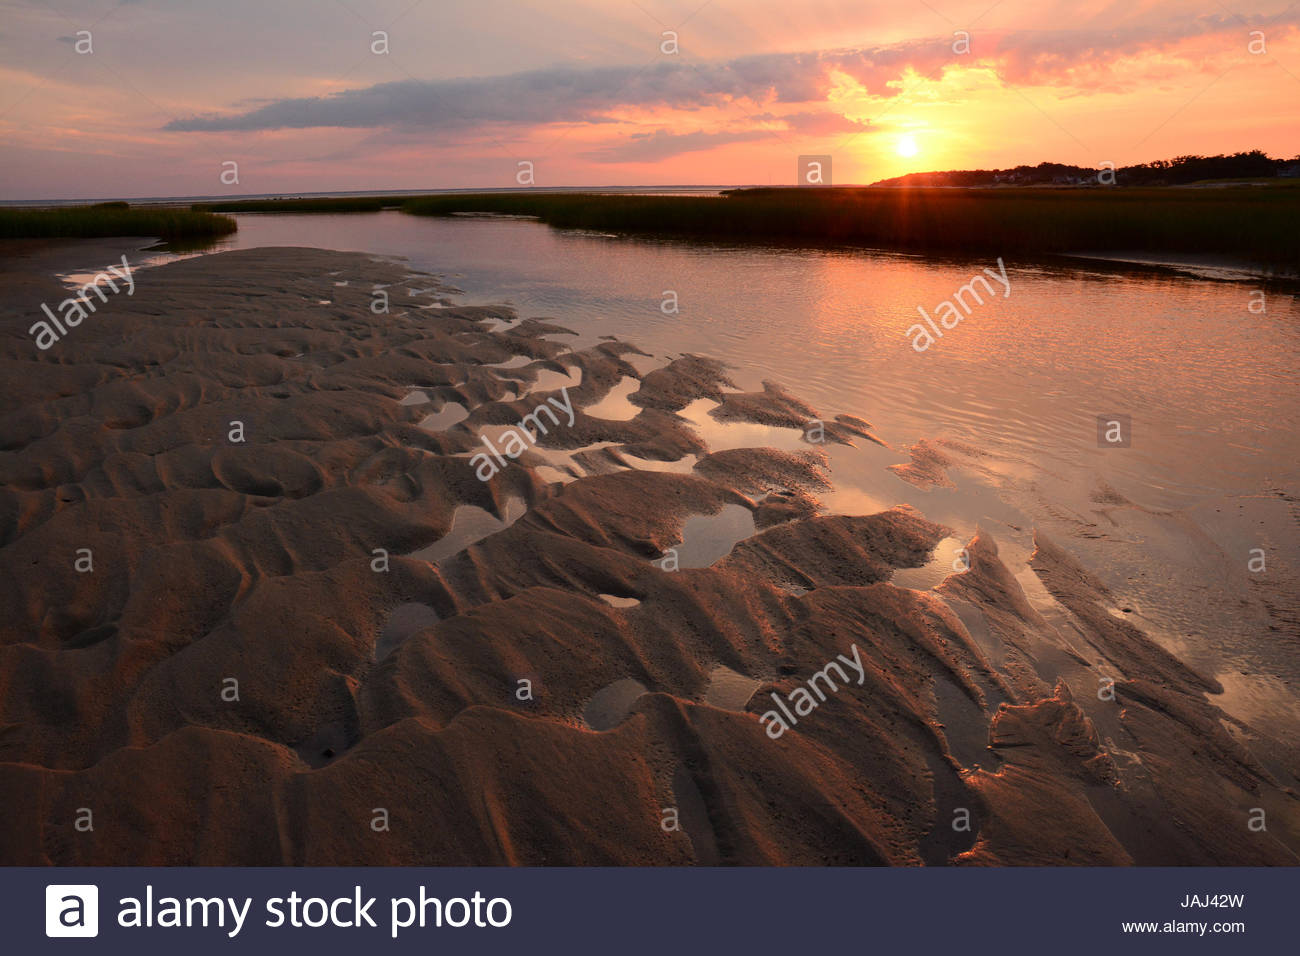 Sunrise over Payne's Creek estuary and tidal flats in Brewster, Cape Cod. - Stock Image